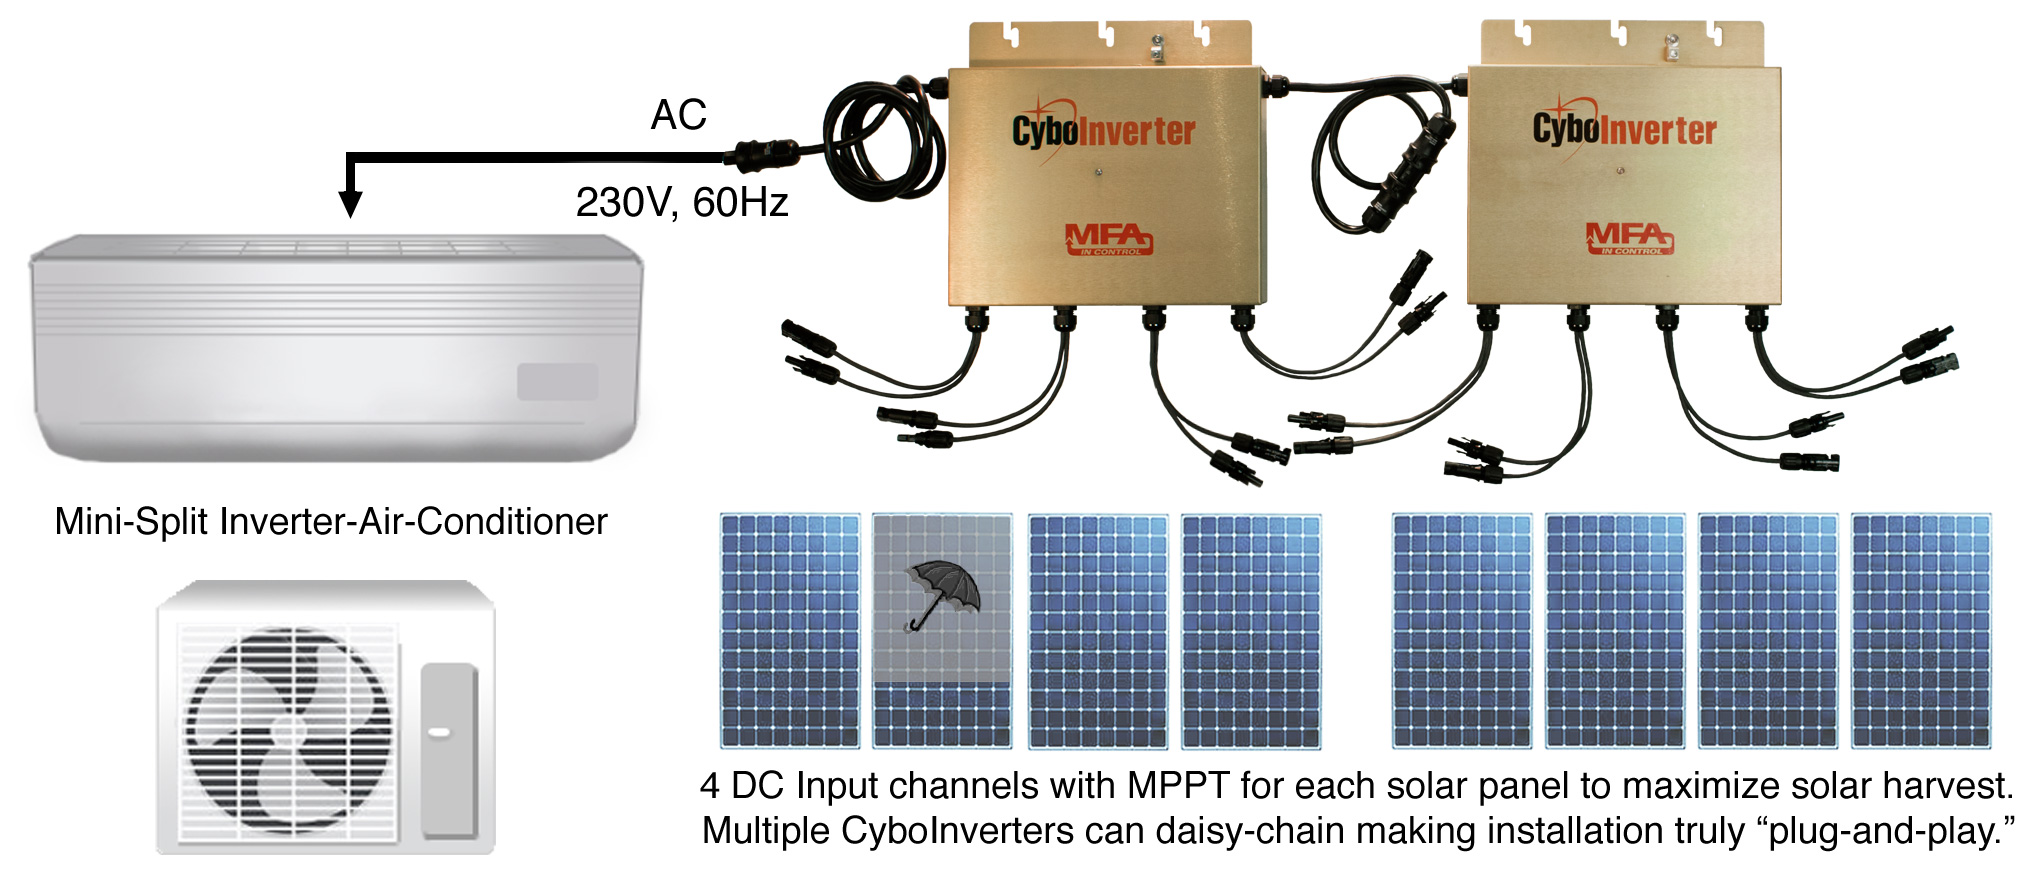 Cyboenergy Small Solar System Wiring Diagram This Battery Less Air Conditioning Is Unique Cost Effective And Can Work In High Temperature Humidity Areas